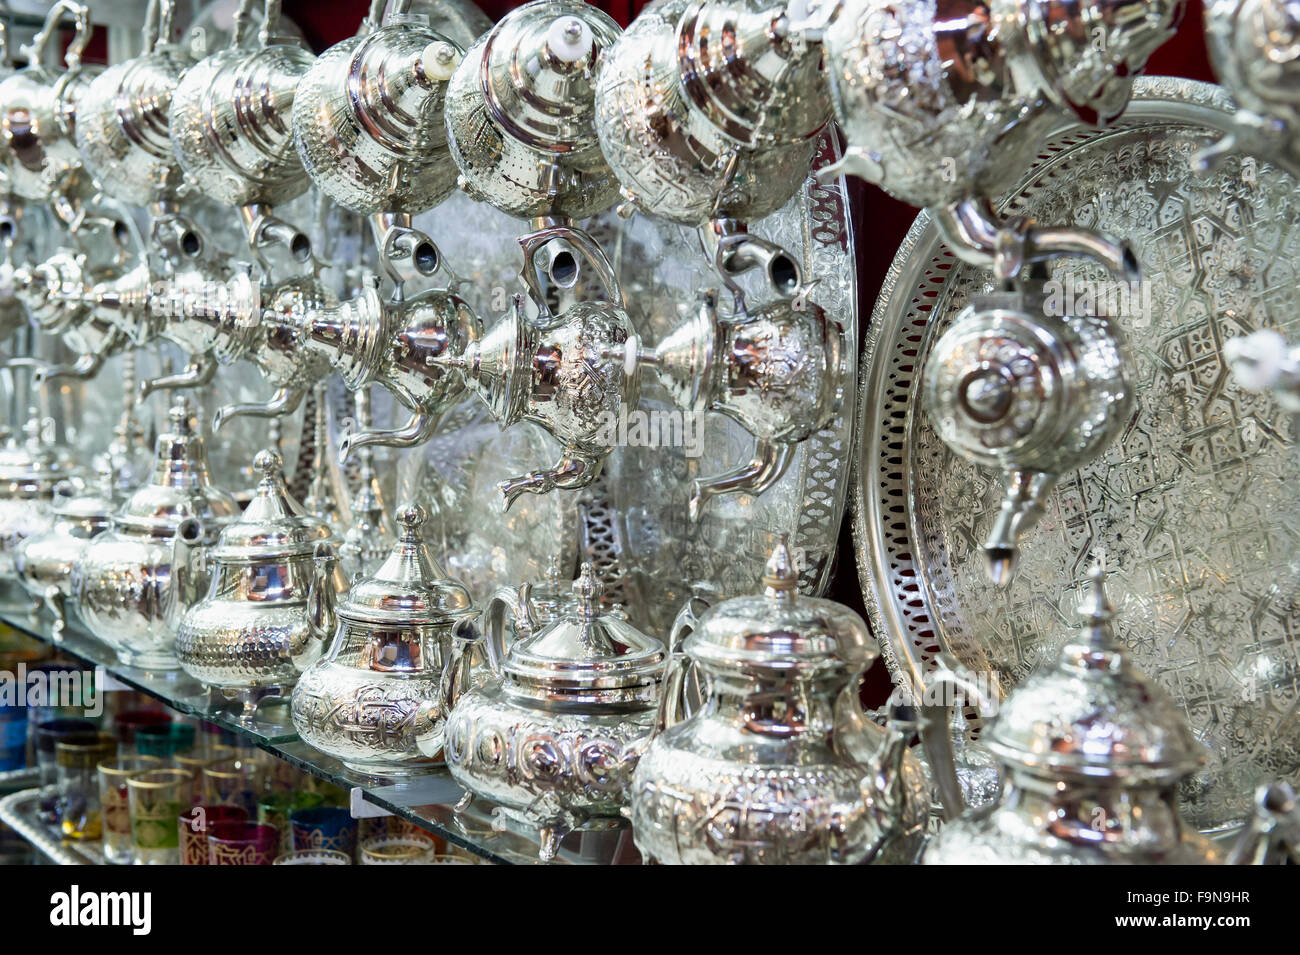 Moroccan silver plates and teapots, Morocco - Stock Image